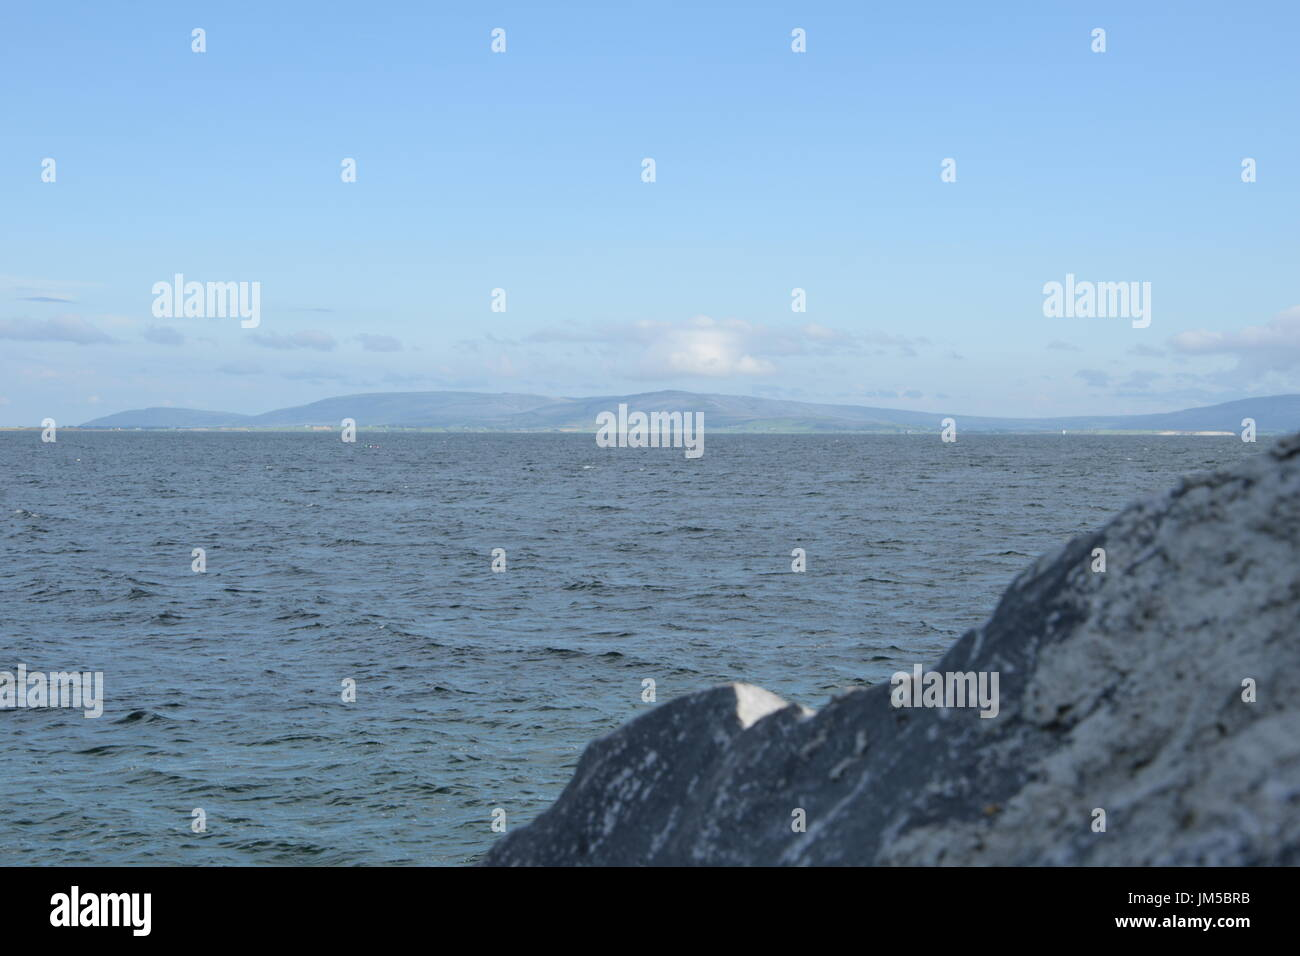 View of the Galway Bay from Seapoint Promenade in the Galway City - Stock Image